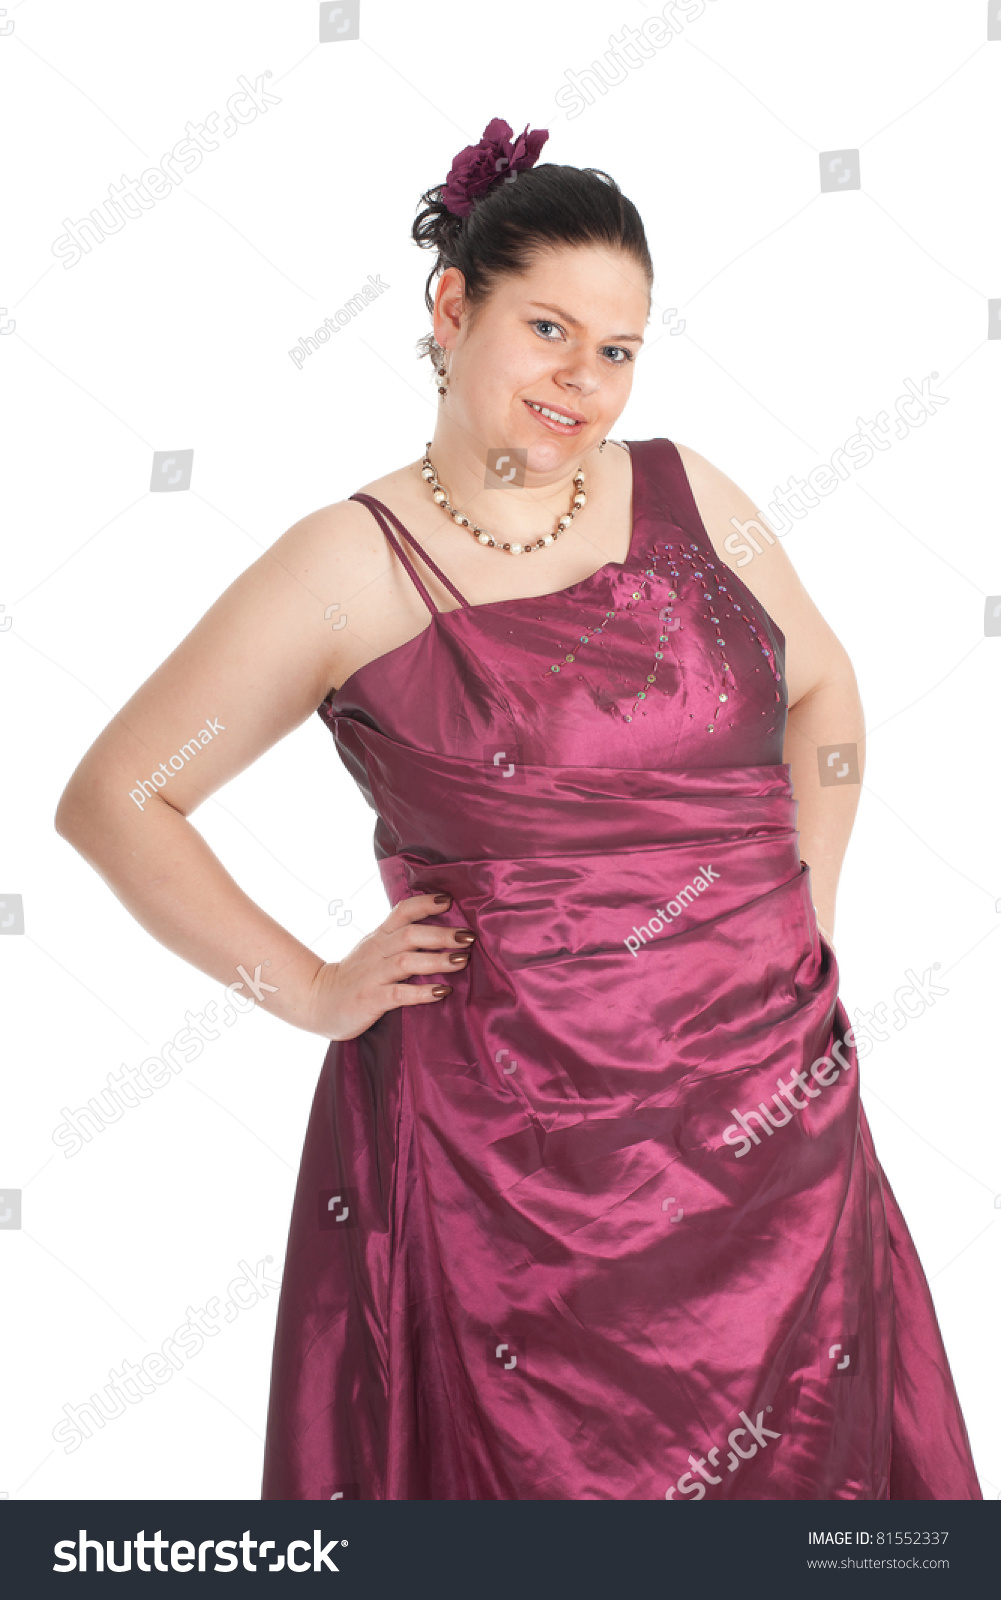 Old Fashioned Ball Dresses